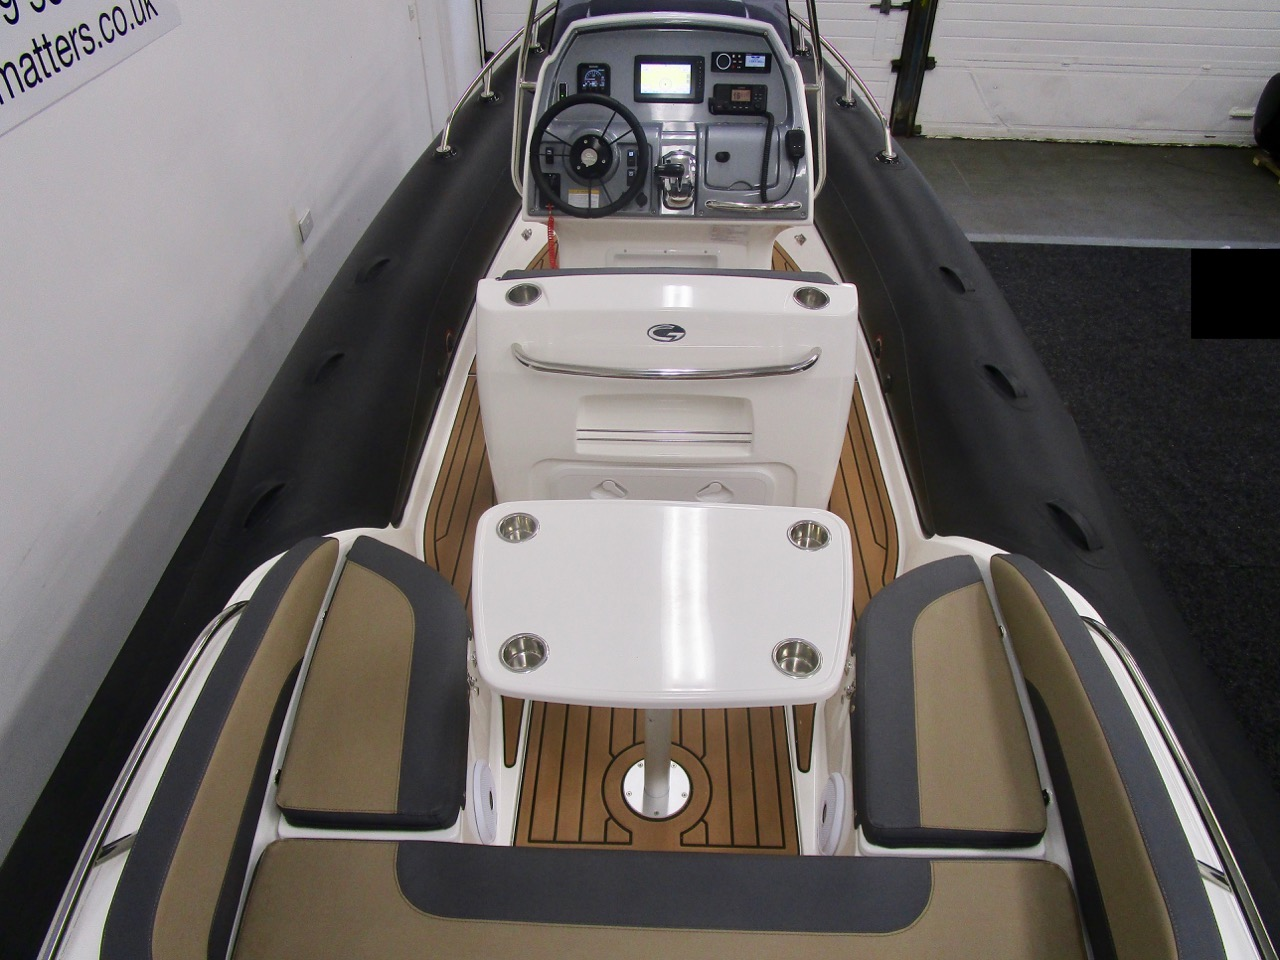 Grand RIB Golden Line G650 rear seats and table